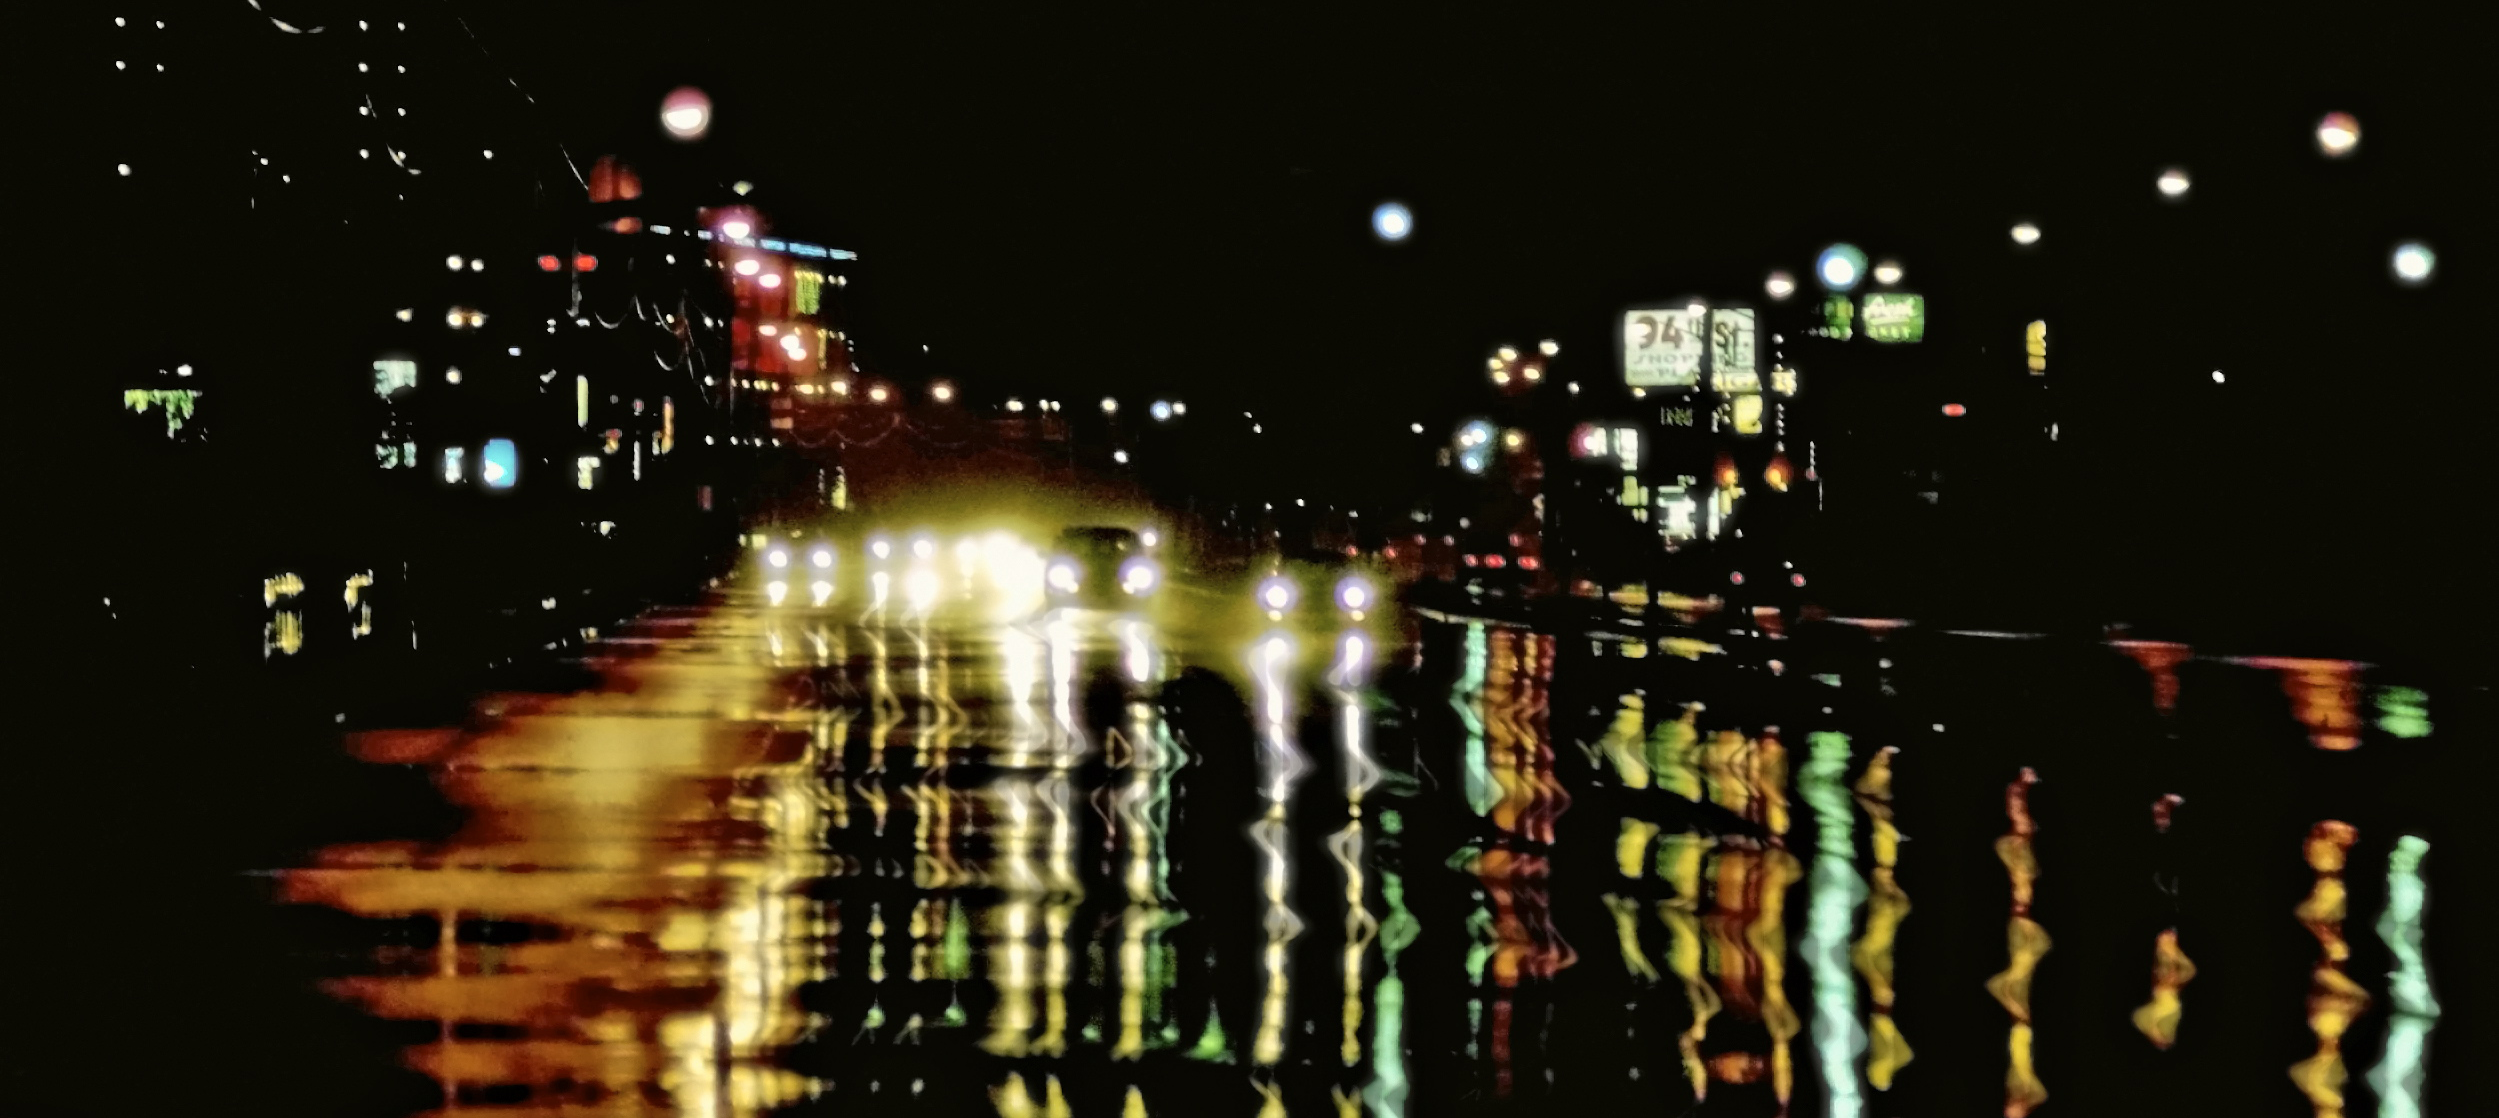 photo of cars on wet road at nighttime